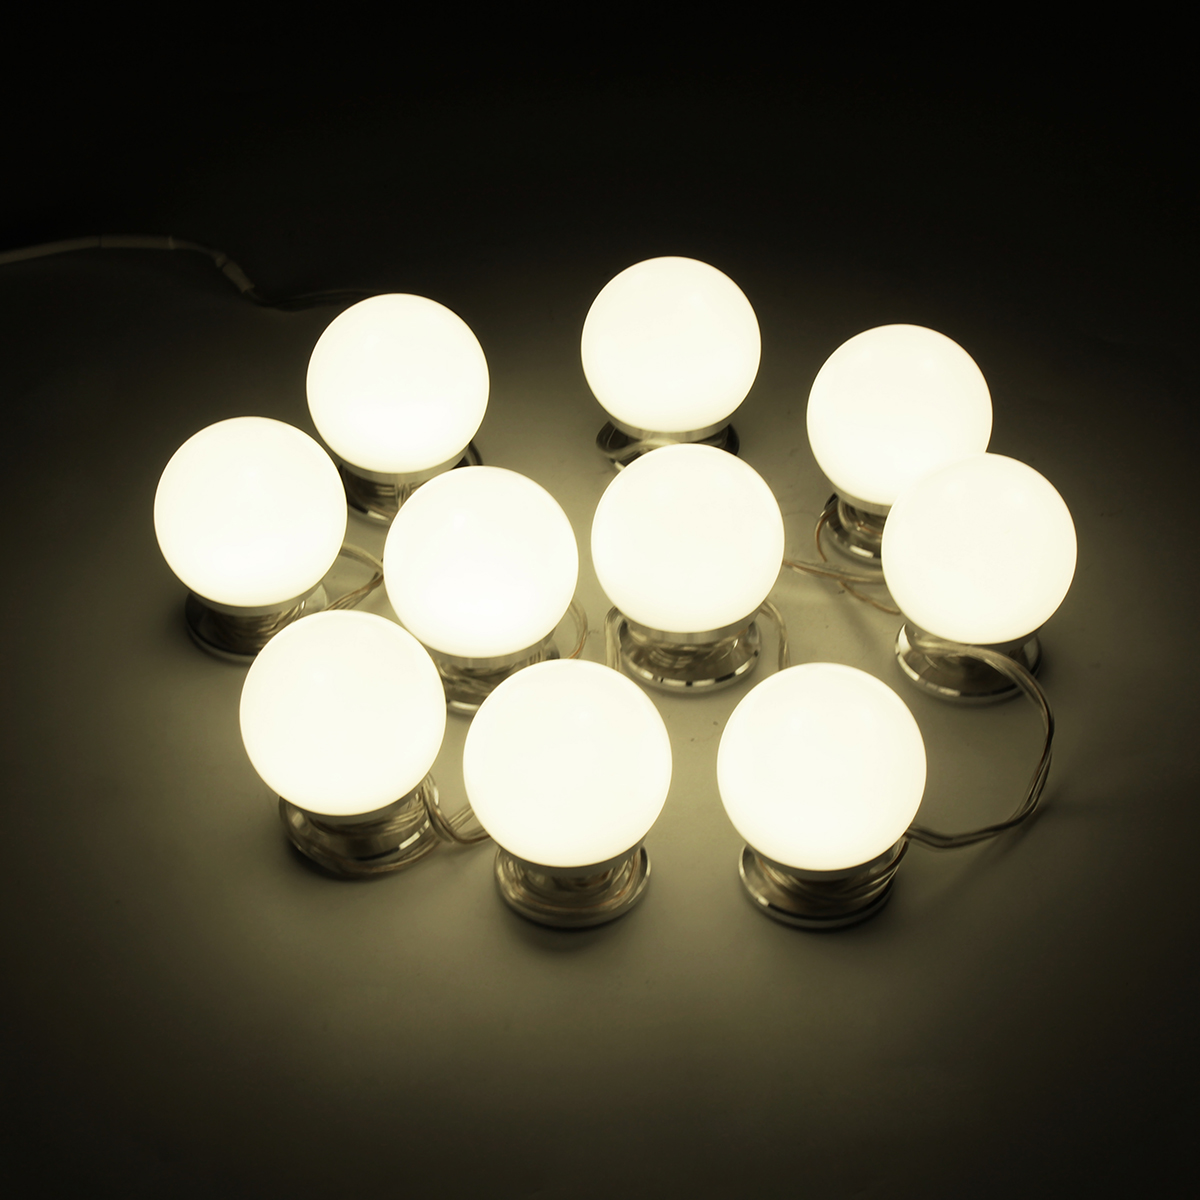 10pcs Makeup Mirror Vanity LED Light Bulbs Hollywood Style Cosmetic Lamp Dimmable for Dressing Table US Power Supply Adapter